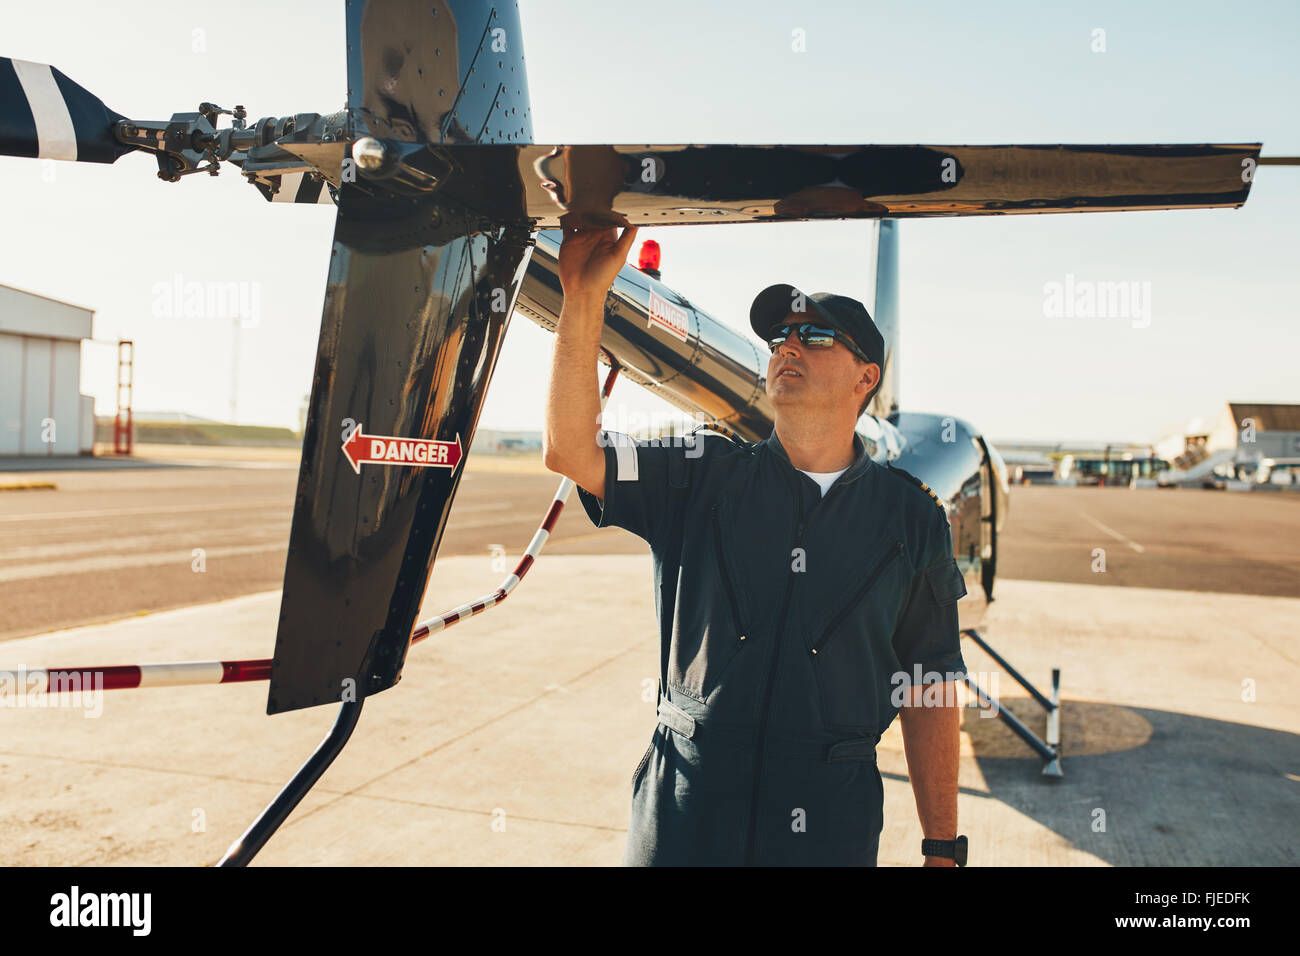 Male pilot in uniform examining helicopter tail wing. Pre flight inspection by pilot at the airport. - Stock Image